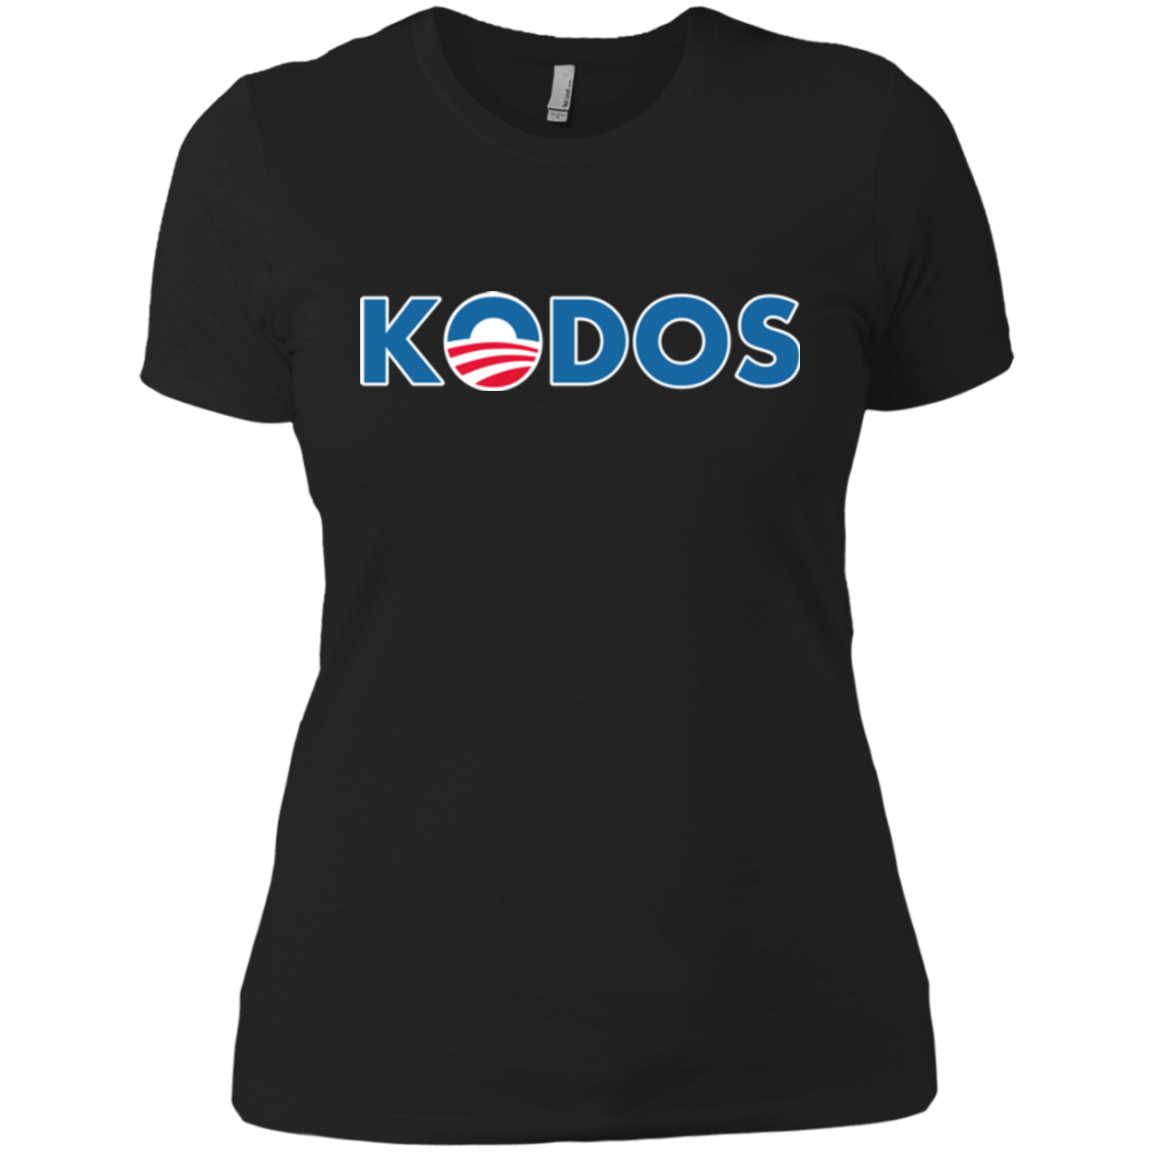 T-Shirts Black / X-Small Vote for Kodos Women's Premium T-Shirt